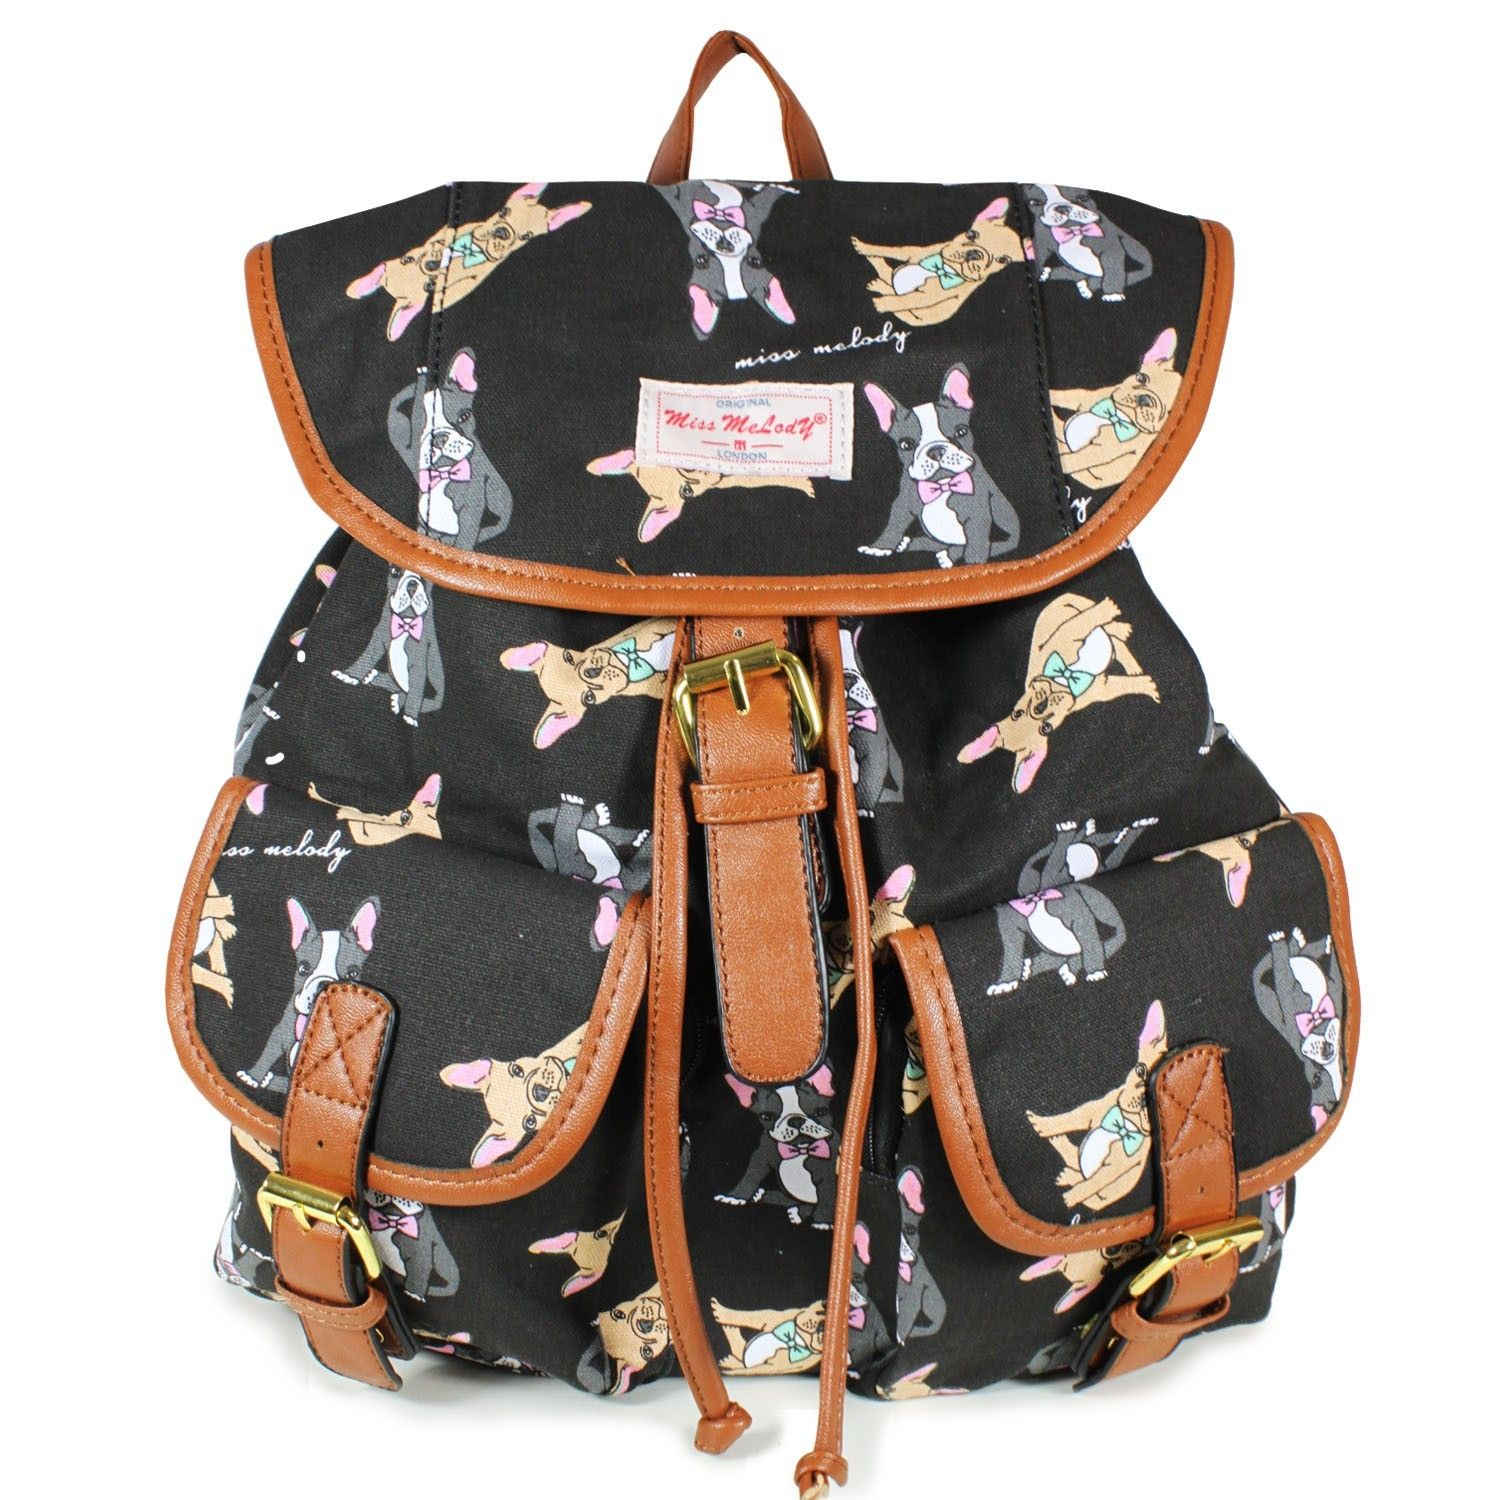 Black French Bulldog Rucksack with a French Bulldog Print